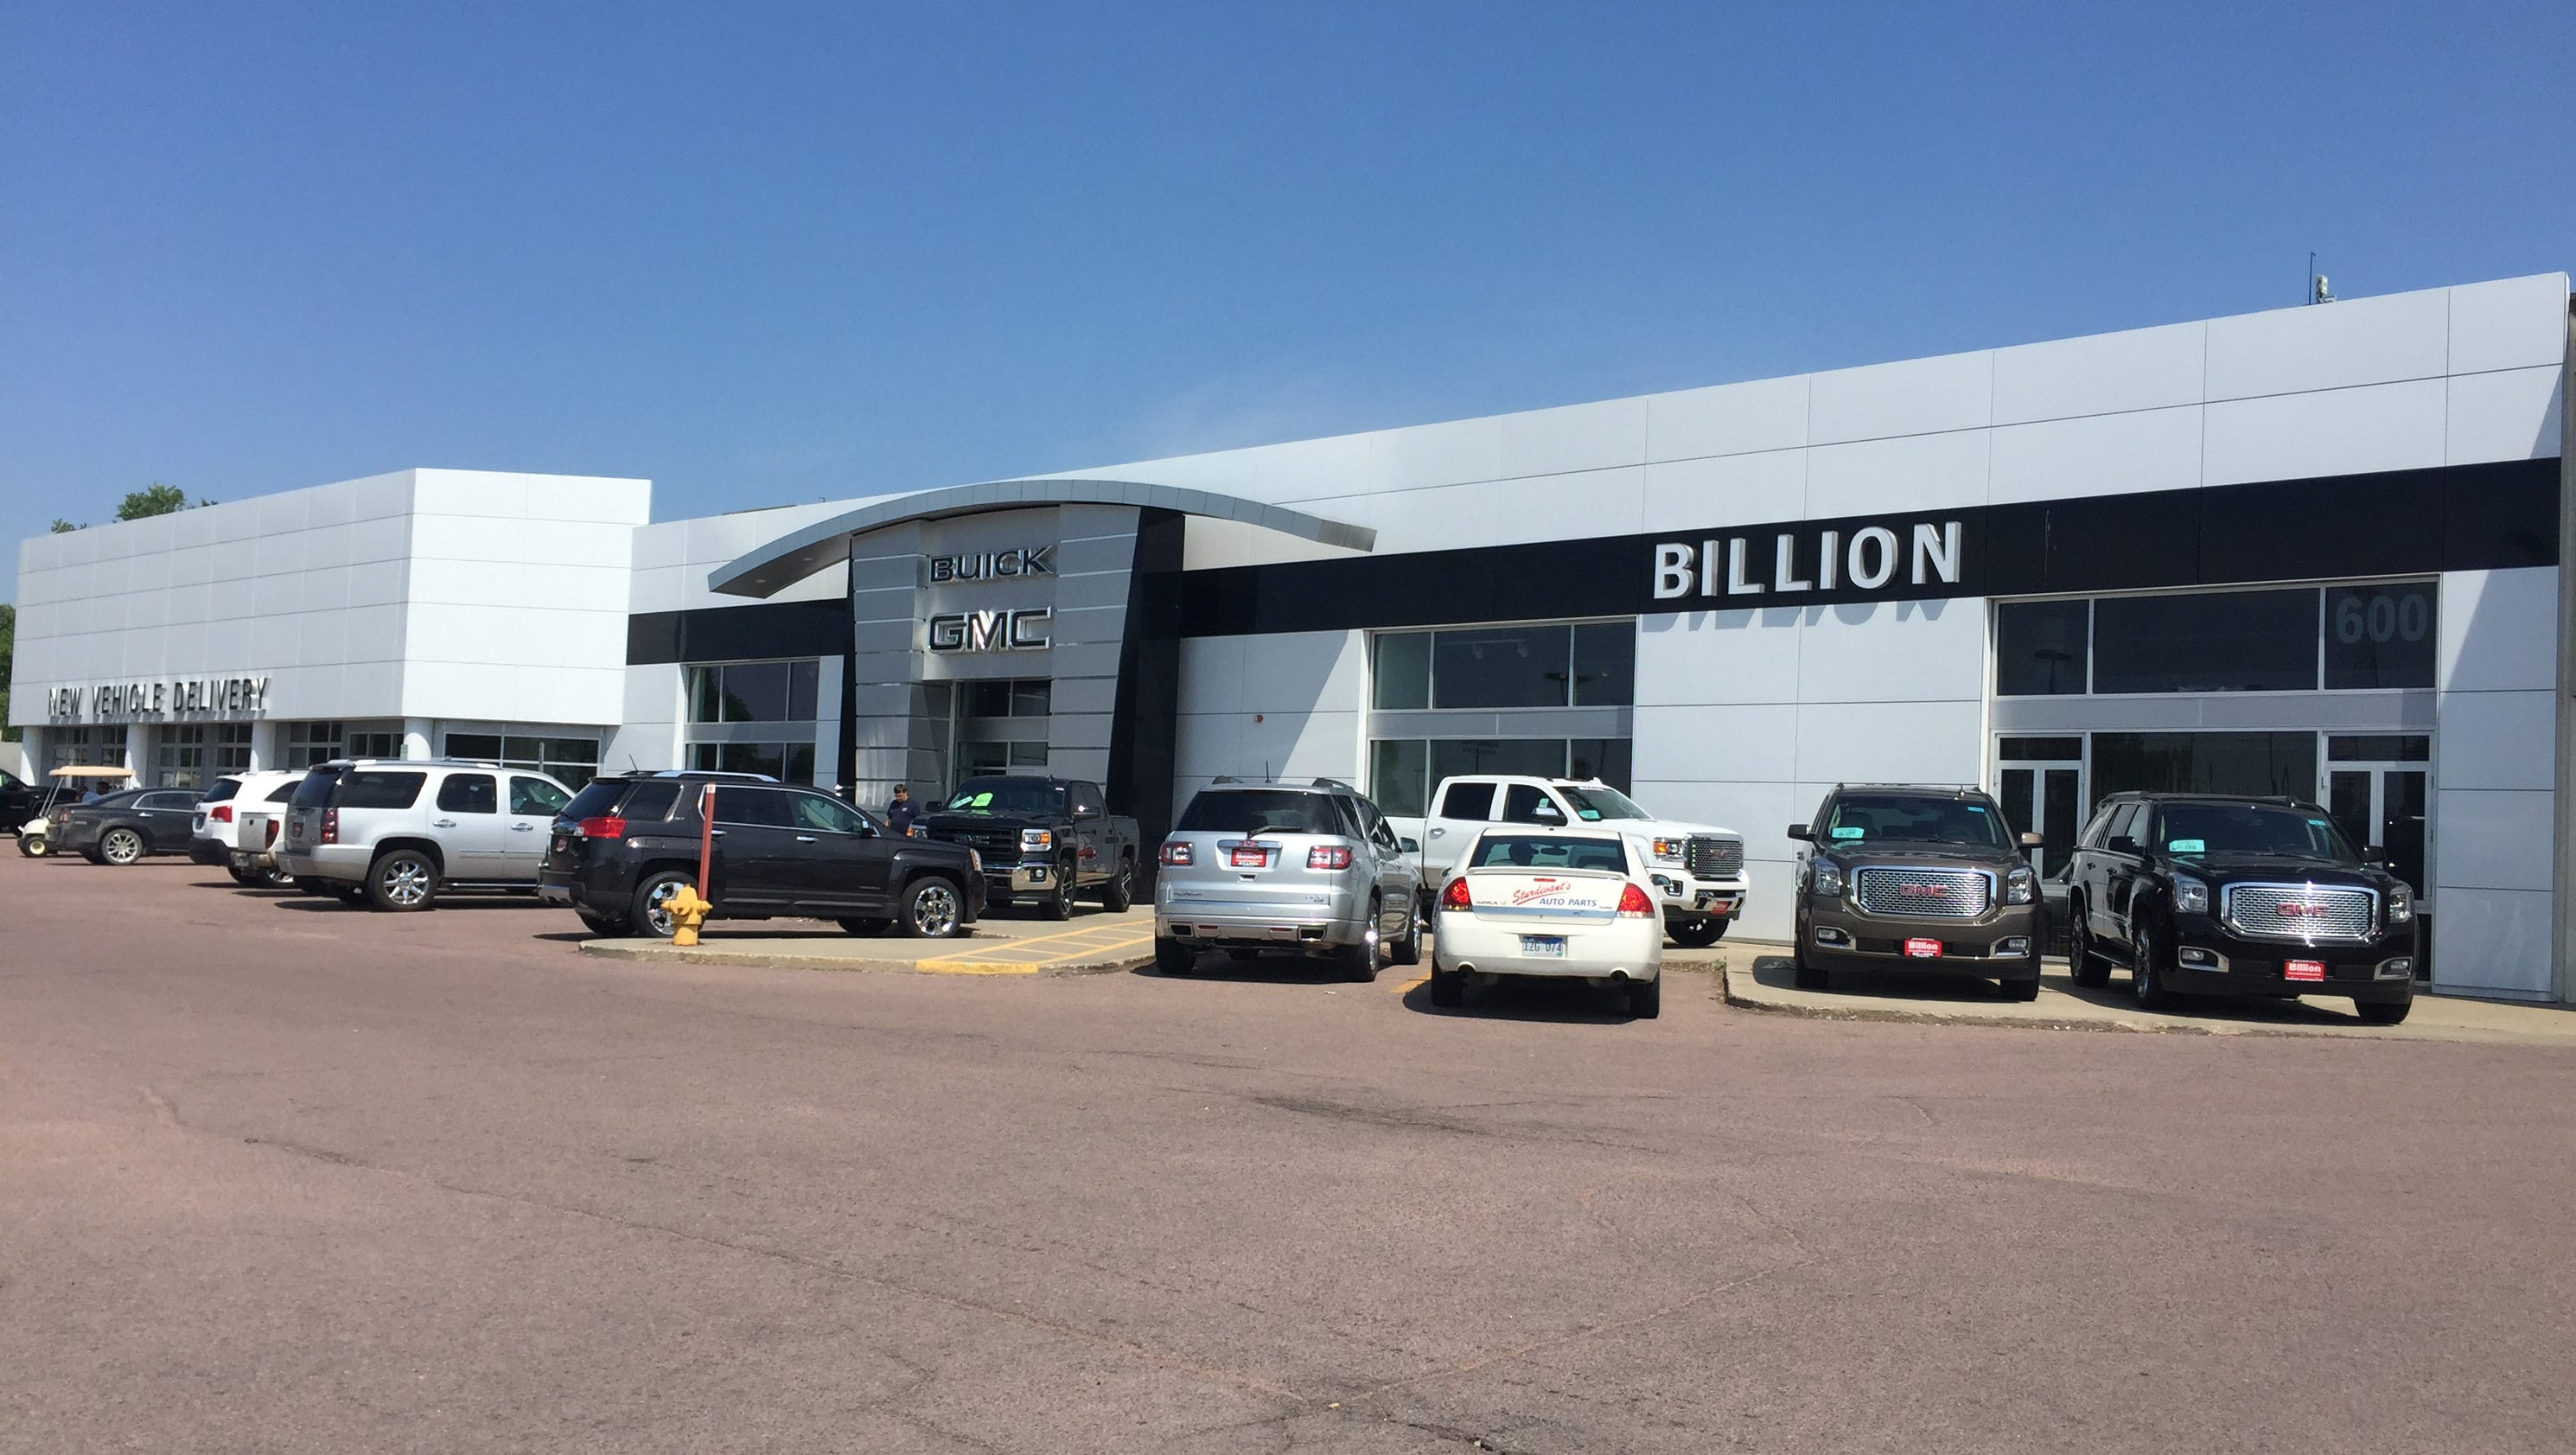 dealerships photos by gmc new buick sf media montague pin facade dealership